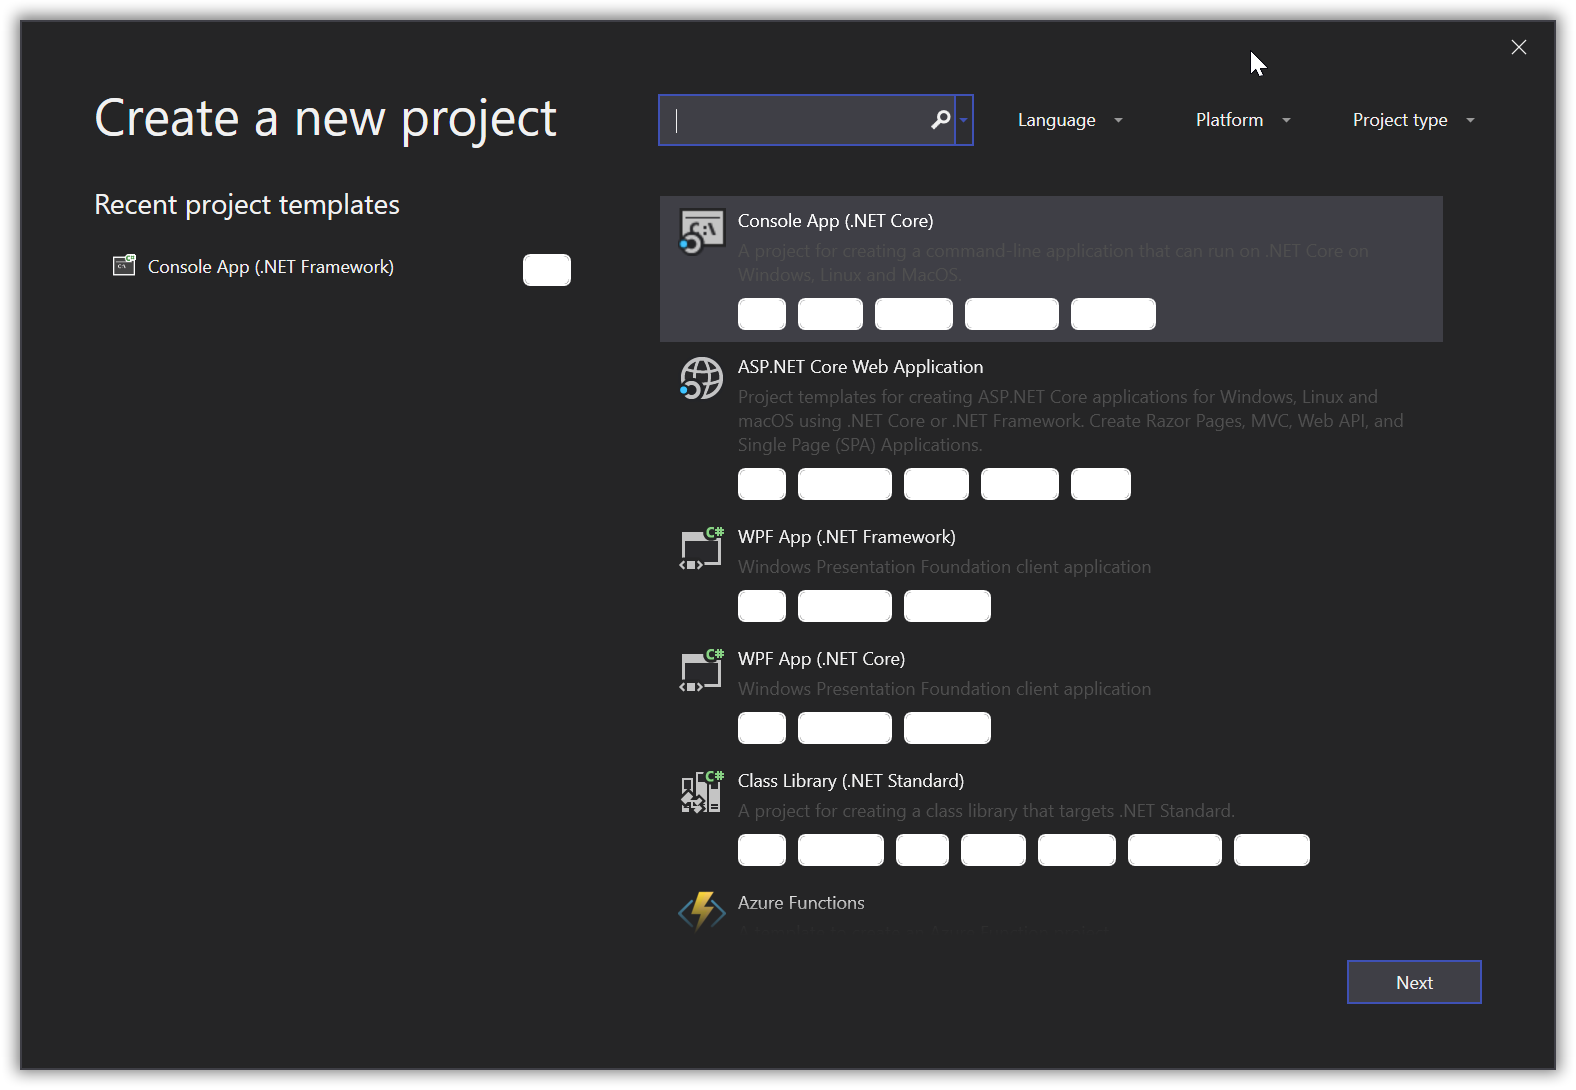 Material Dark theme color issue with Visual Studio 2019